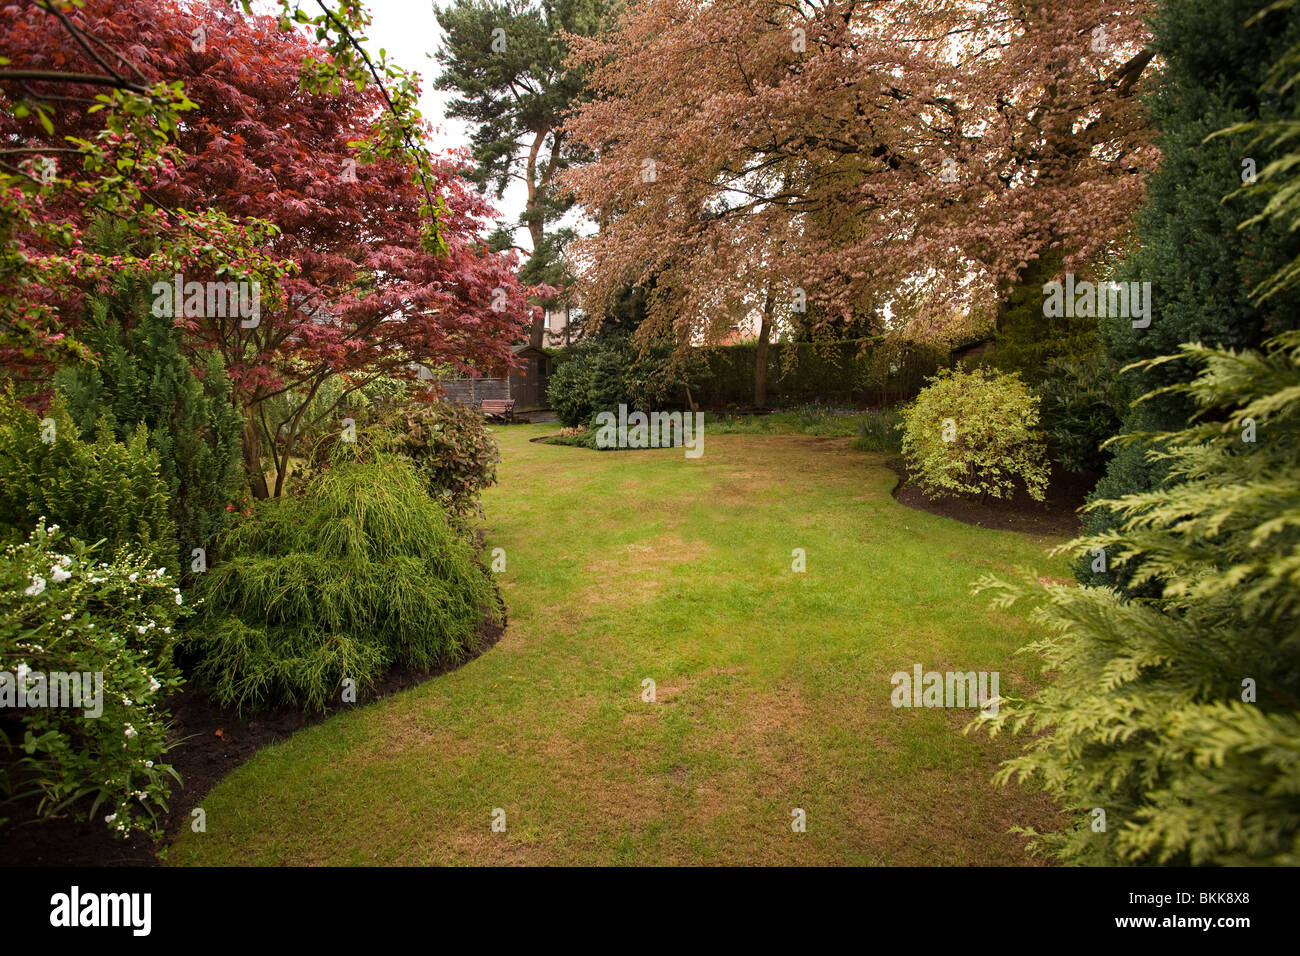 Back Gardens Stock Photos & Back Gardens Stock Images - Alamy